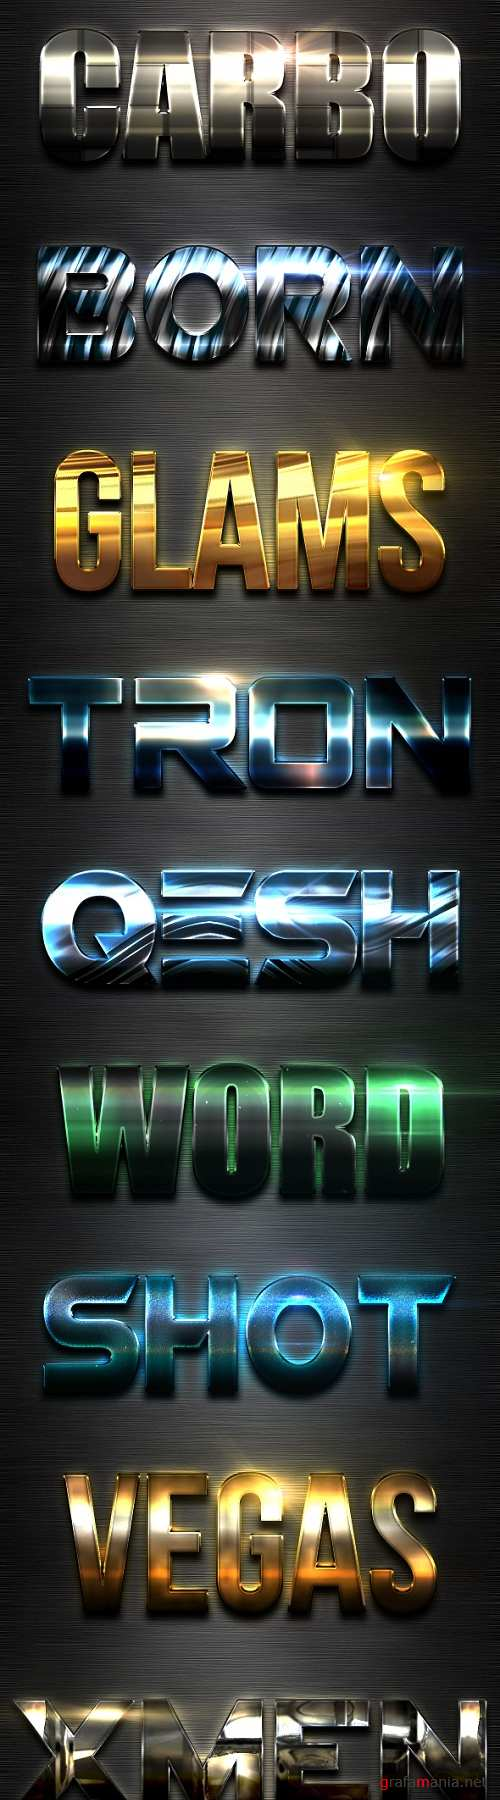 New 10 Extra Light Text Effects Vol.8 - 19498079